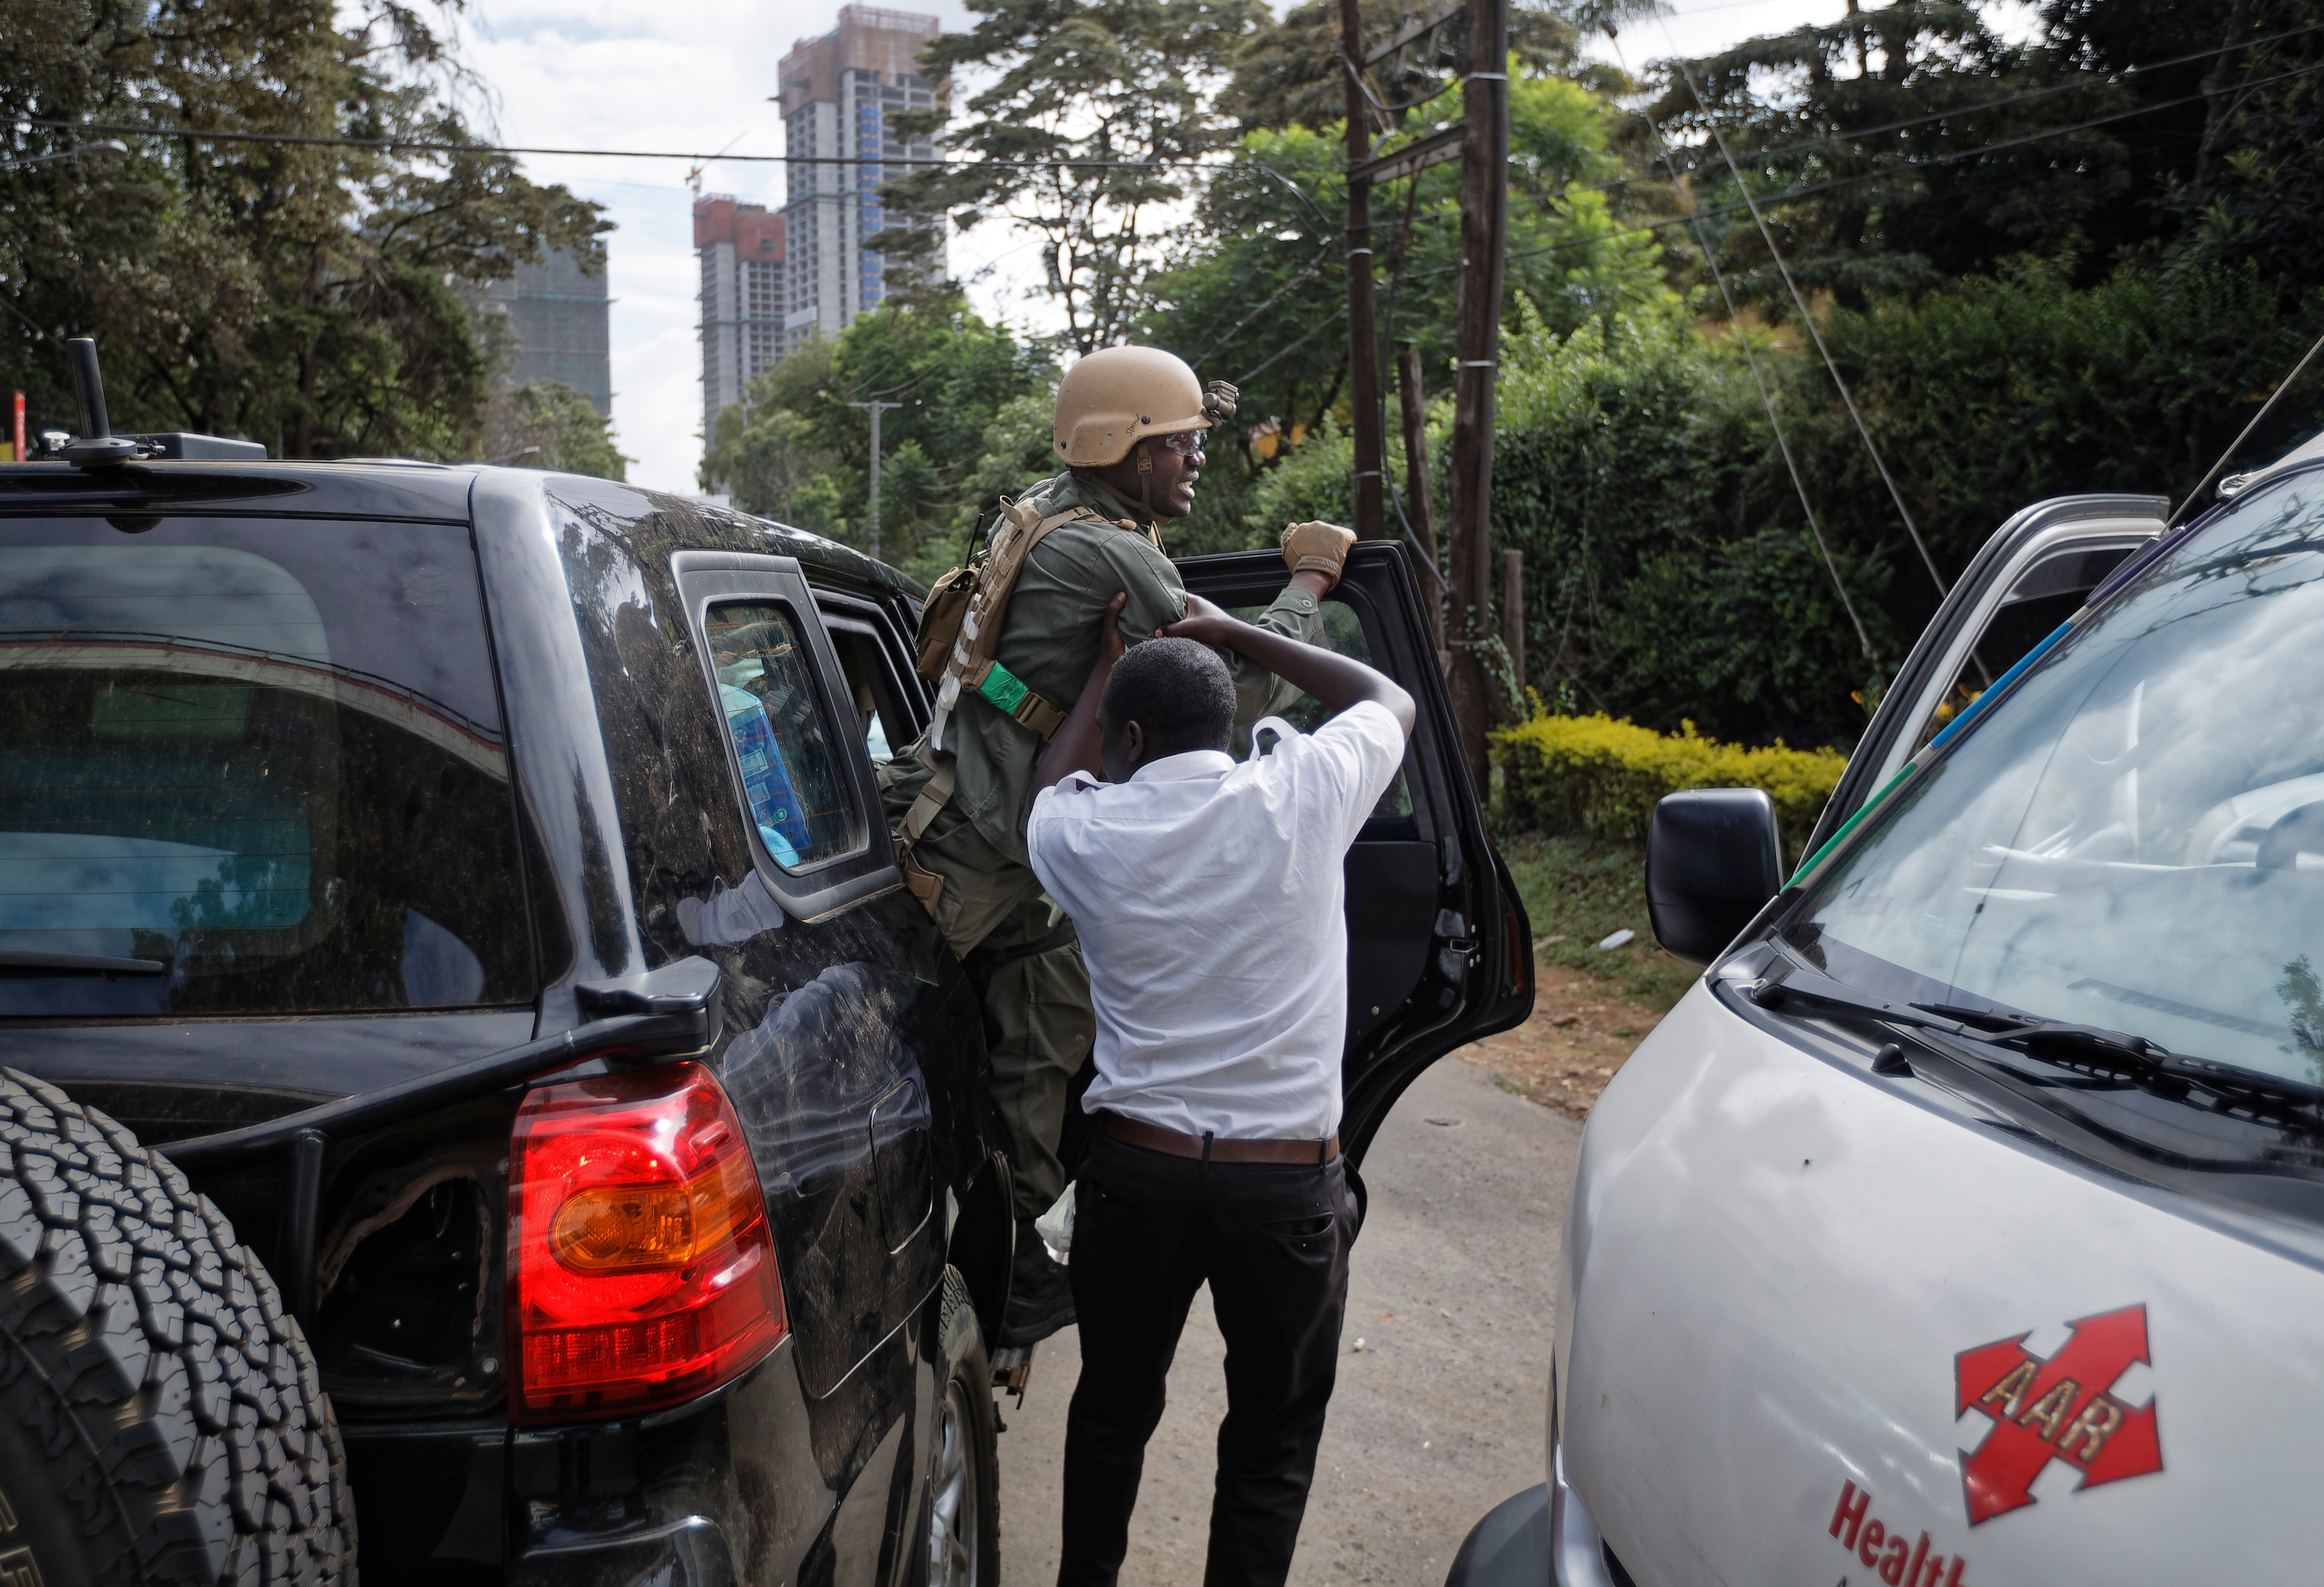 A member of Kenyan special forces is helped out of a US embassy diplomatic vehicle by a paramedic at the scene Wednesday, Jan. 16, 2019 in Nairobi, Kenya. Extremists stormed a luxury hotel in Kenya's capital on Tuesday, setting off thunderous explosions and gunning down people at cafe tables in an attack claimed by Africa's deadliest Islamic militant group. (AP Photo/Ben Curtis) A wounded police officer is helped out of a US embassy diplomatic vehicle near the hotel attack, January 16, 2019 in Nairobi, Kenya. The officer is a member of a Special Program for Embassy Augmentation Response (SPEAR) team, whose members are trained and equipped by the Antiterrorism Assistance program to respond to crises involving the U.S. embassy. (AP/WideWorld Photos)